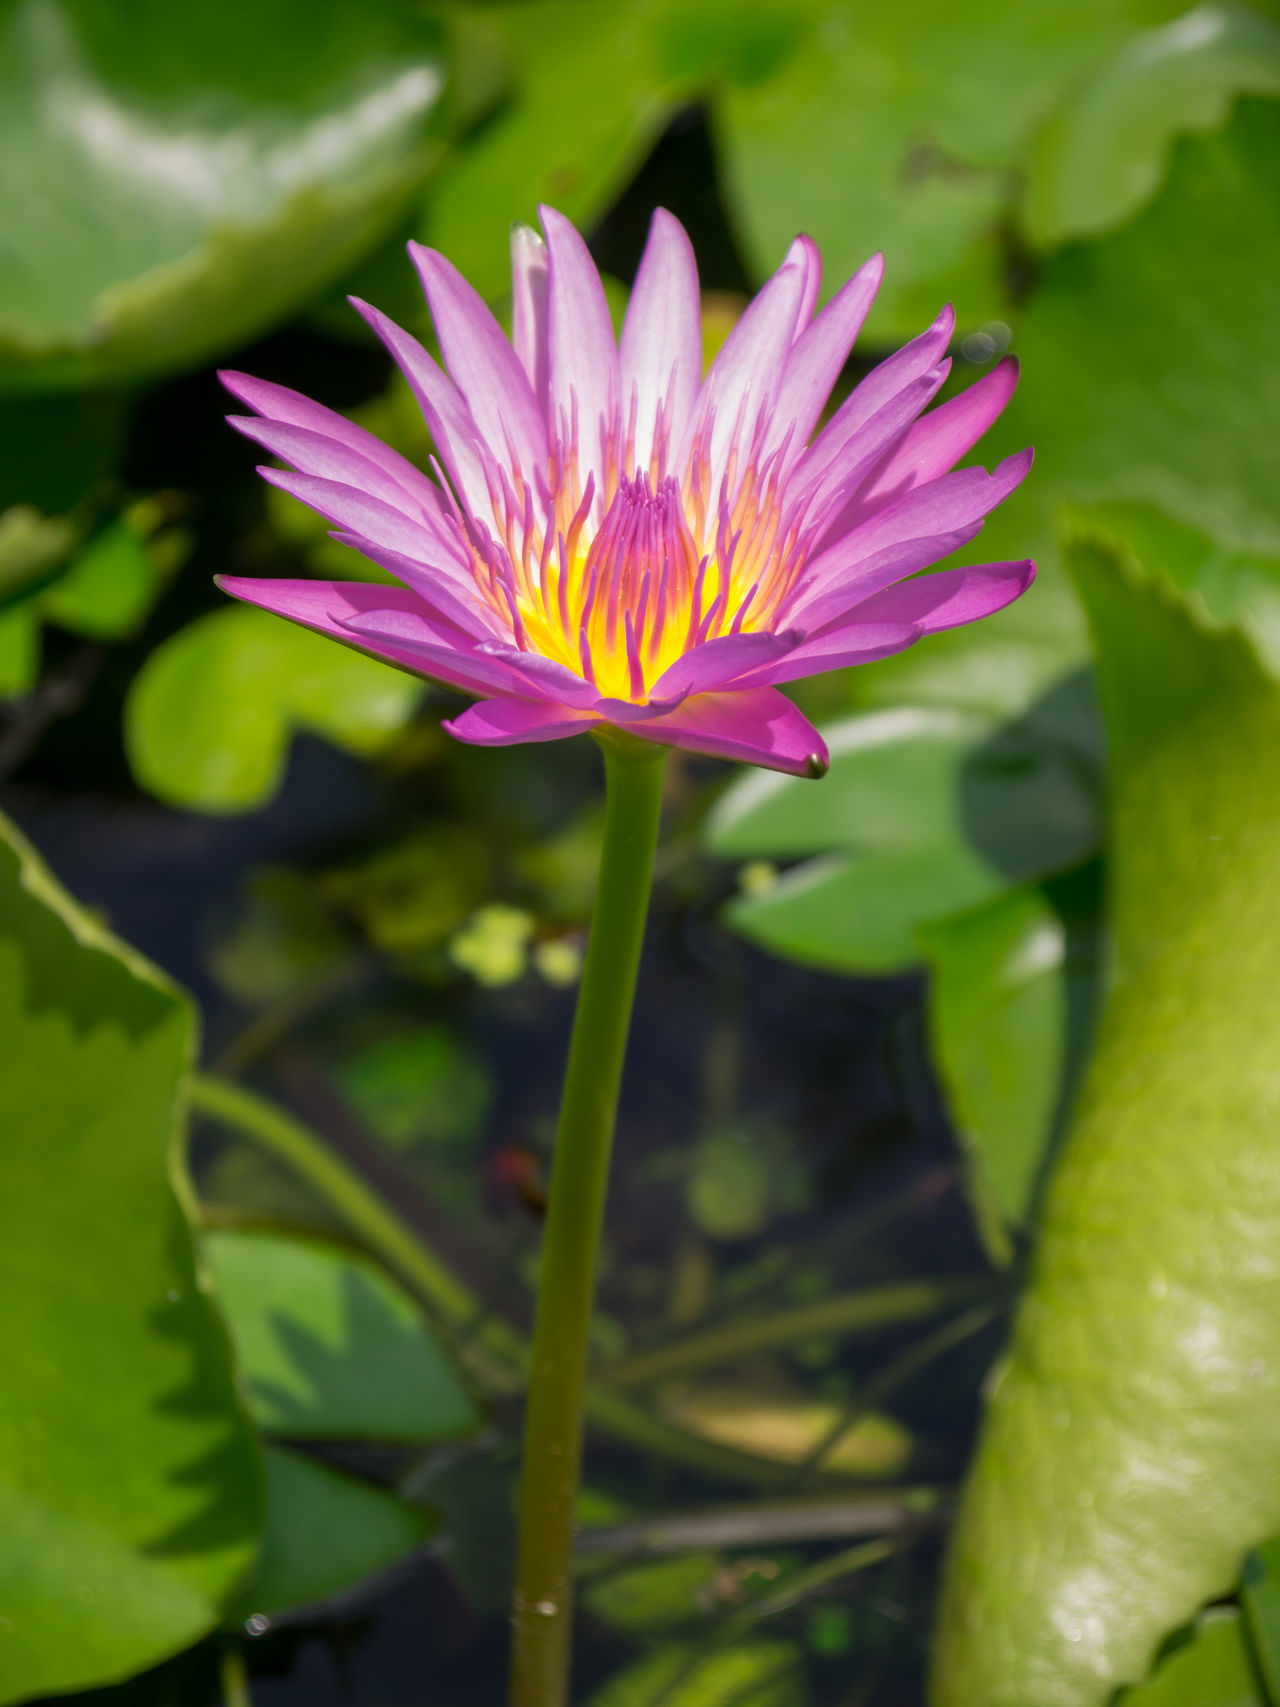 Blooming Purple Lotus in Pond Beauty In Nature Blooming Close-up Day Flower Flower Head Fragility Freshness Growth Leaf Lotus Love Nature No People Outdoors Petal Plant